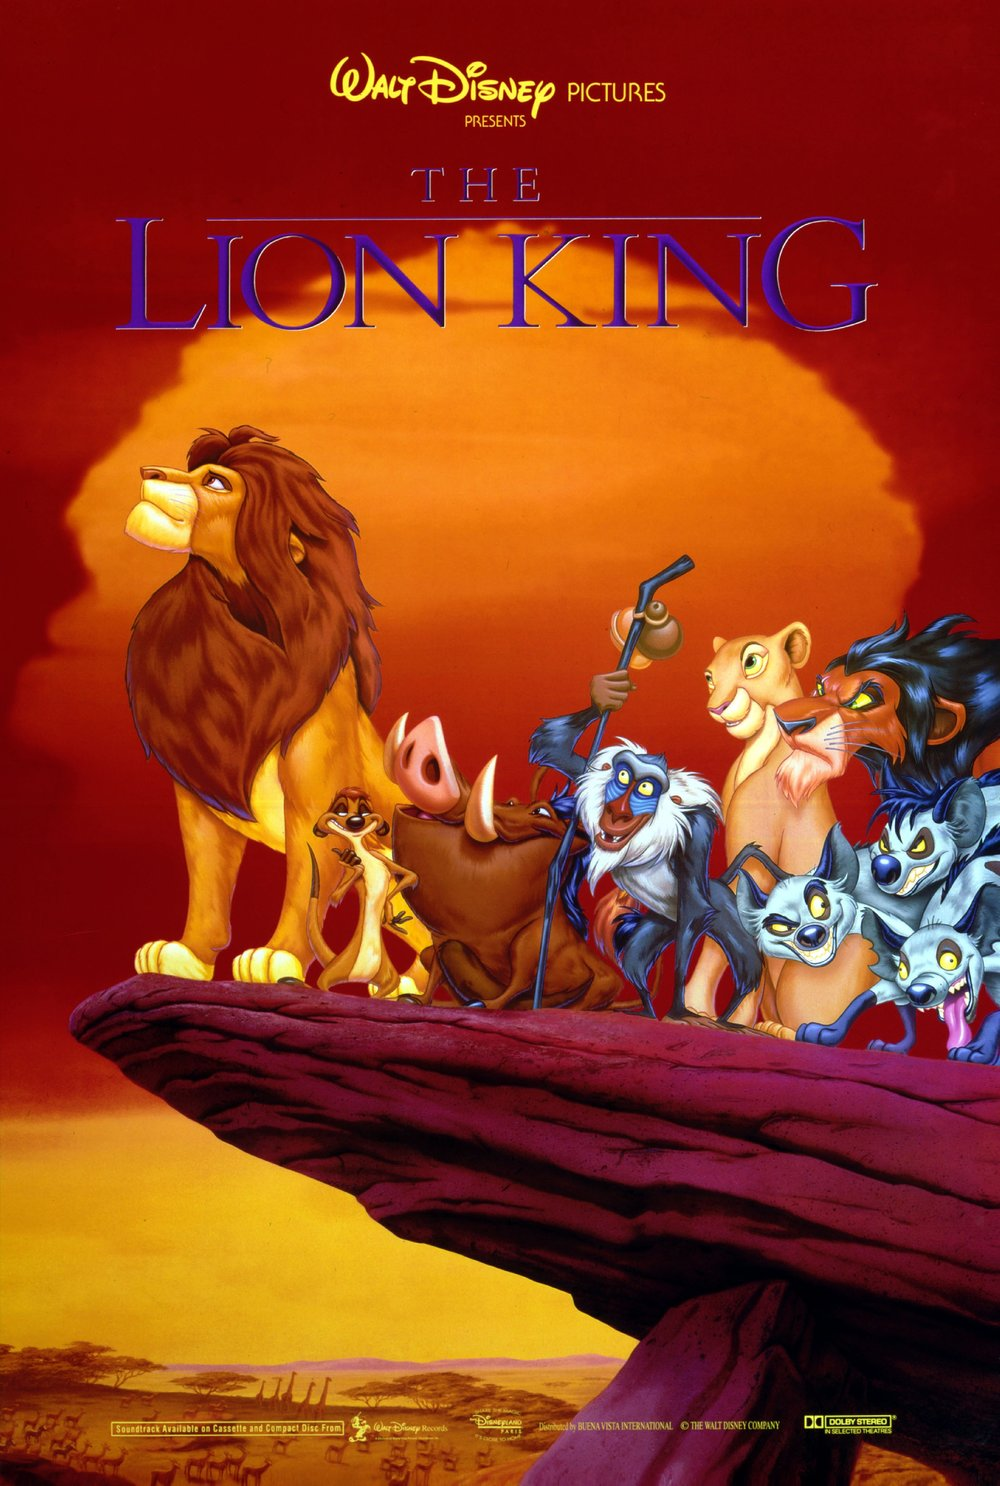 The-Lion-King-Movie-Poster-the-lion-king-34827807-3365-5000 (1).jpg